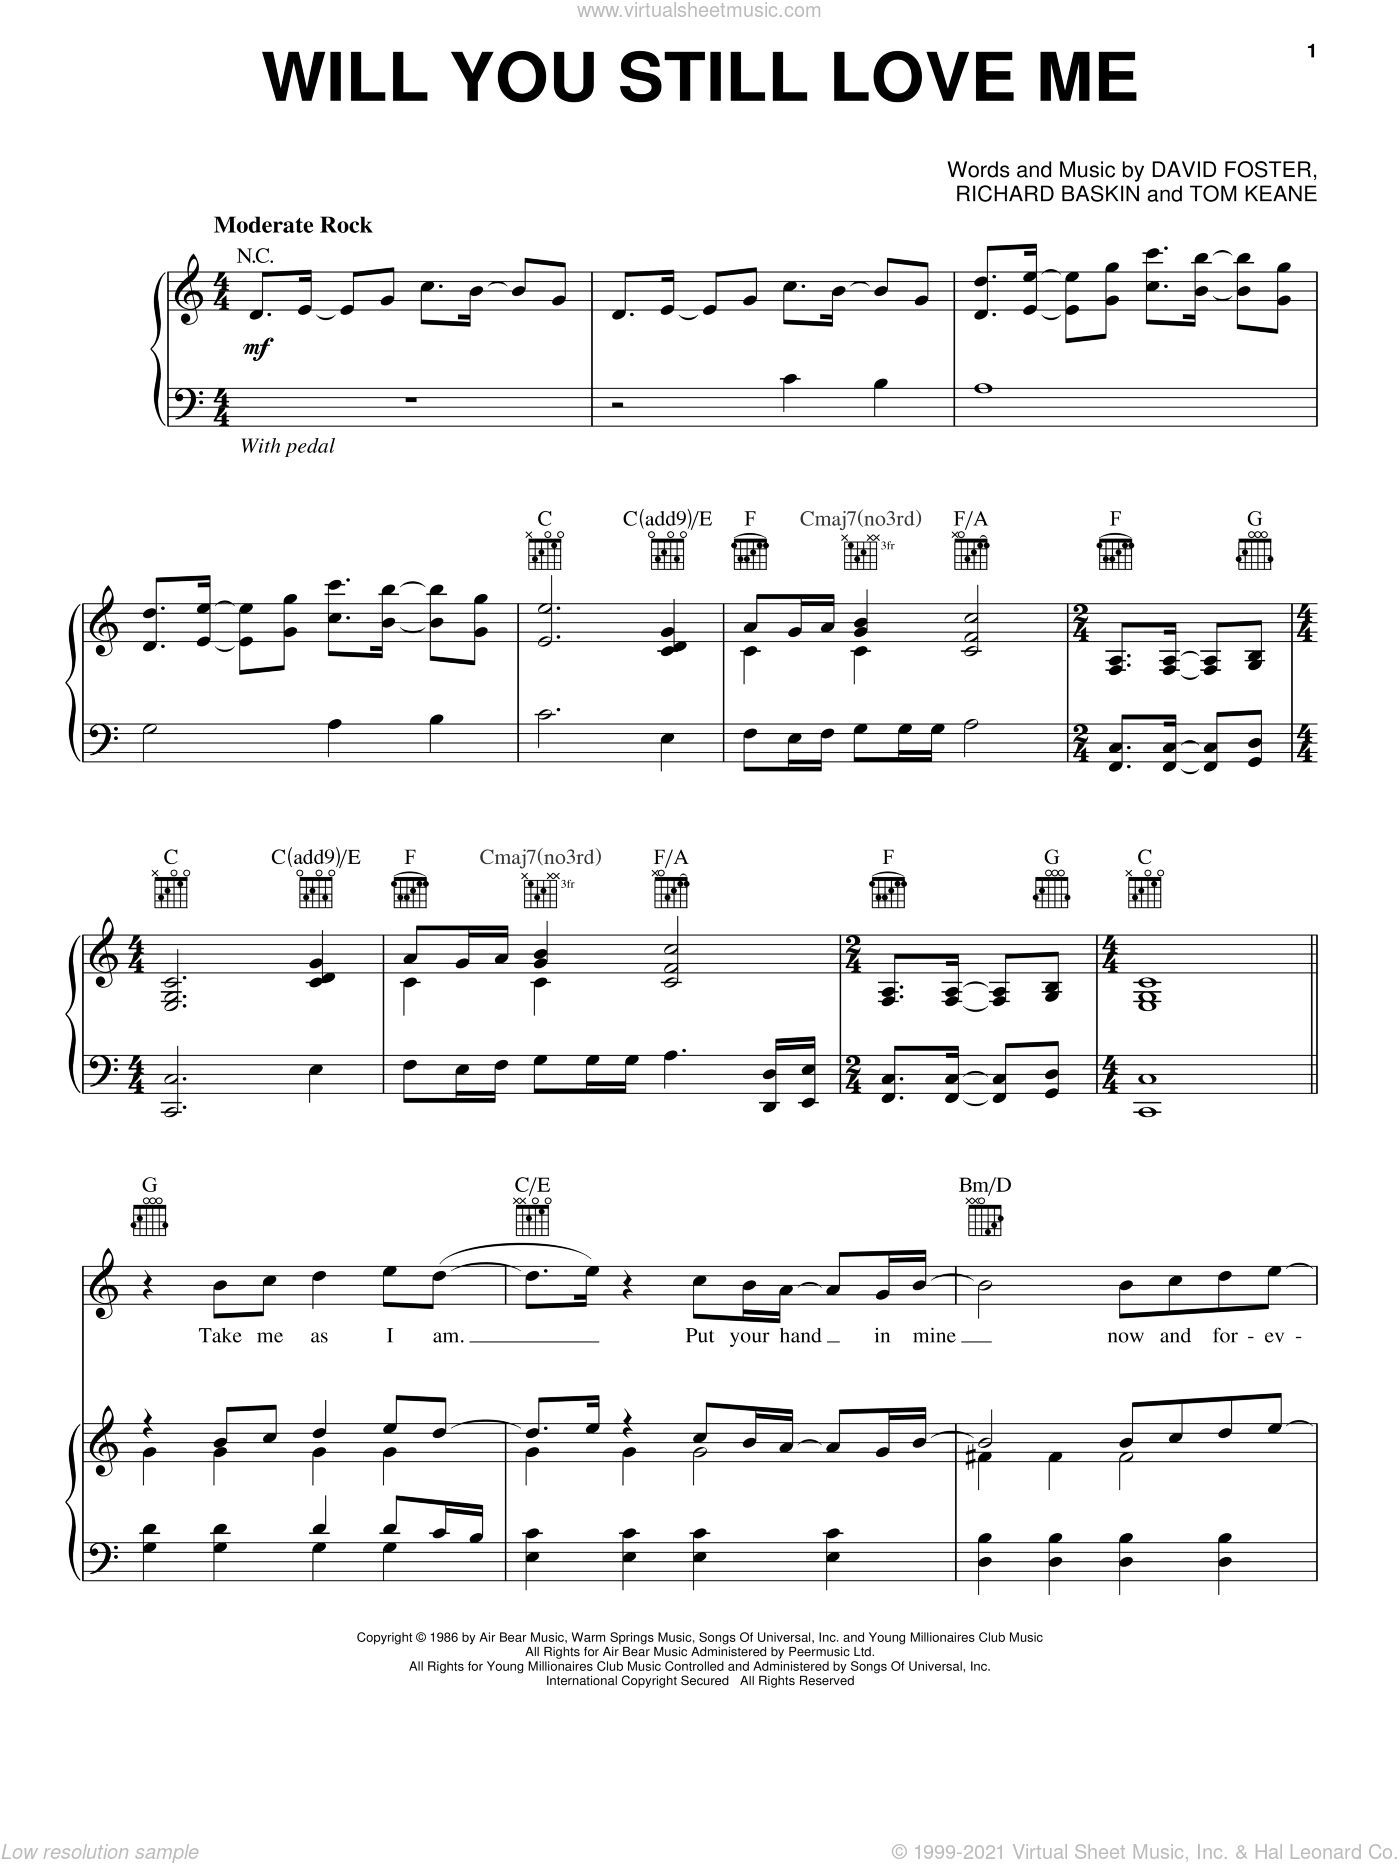 Will You Still Love Me sheet music for voice, piano or guitar by Tom Keane